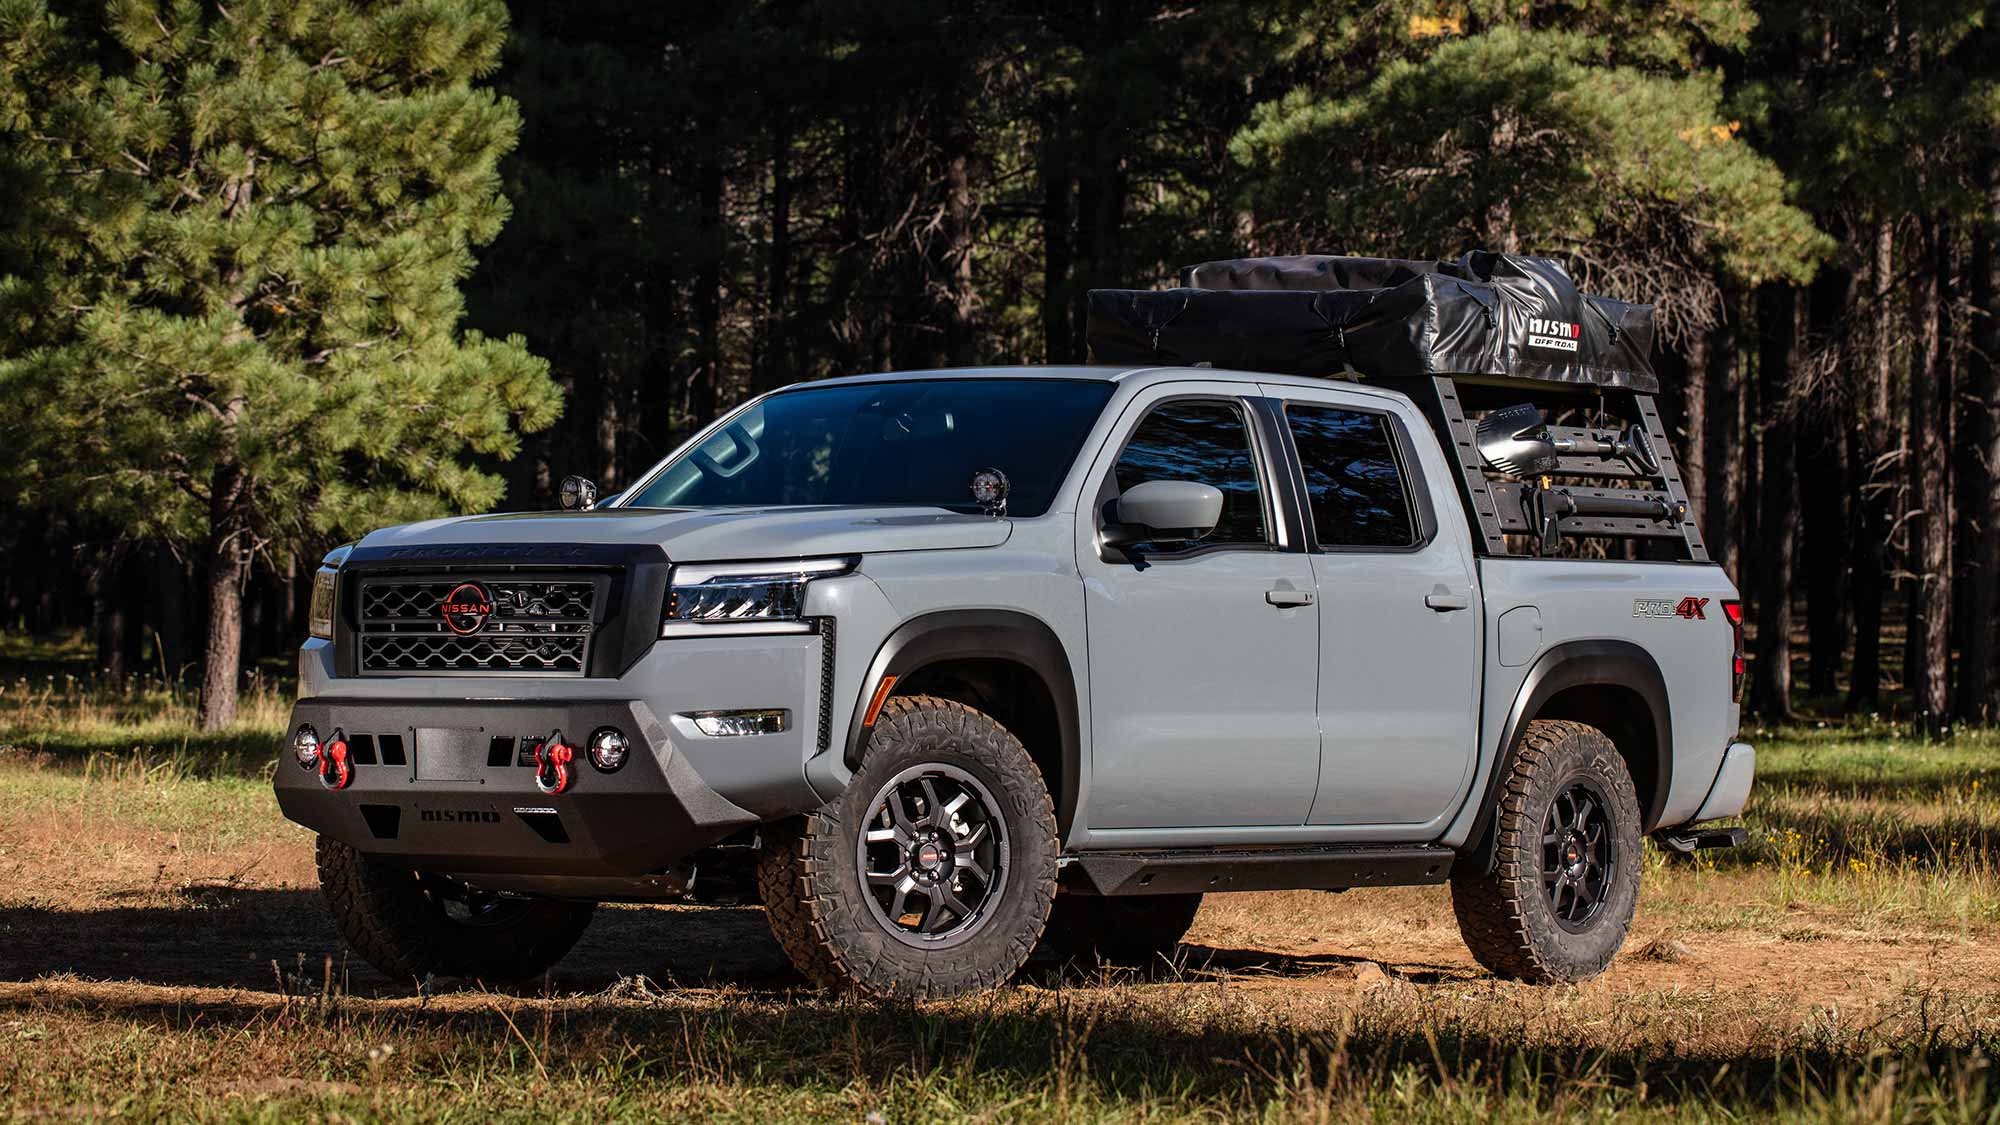 Nissan NISMO Off-road Parts for 2022 Nissan Frontier